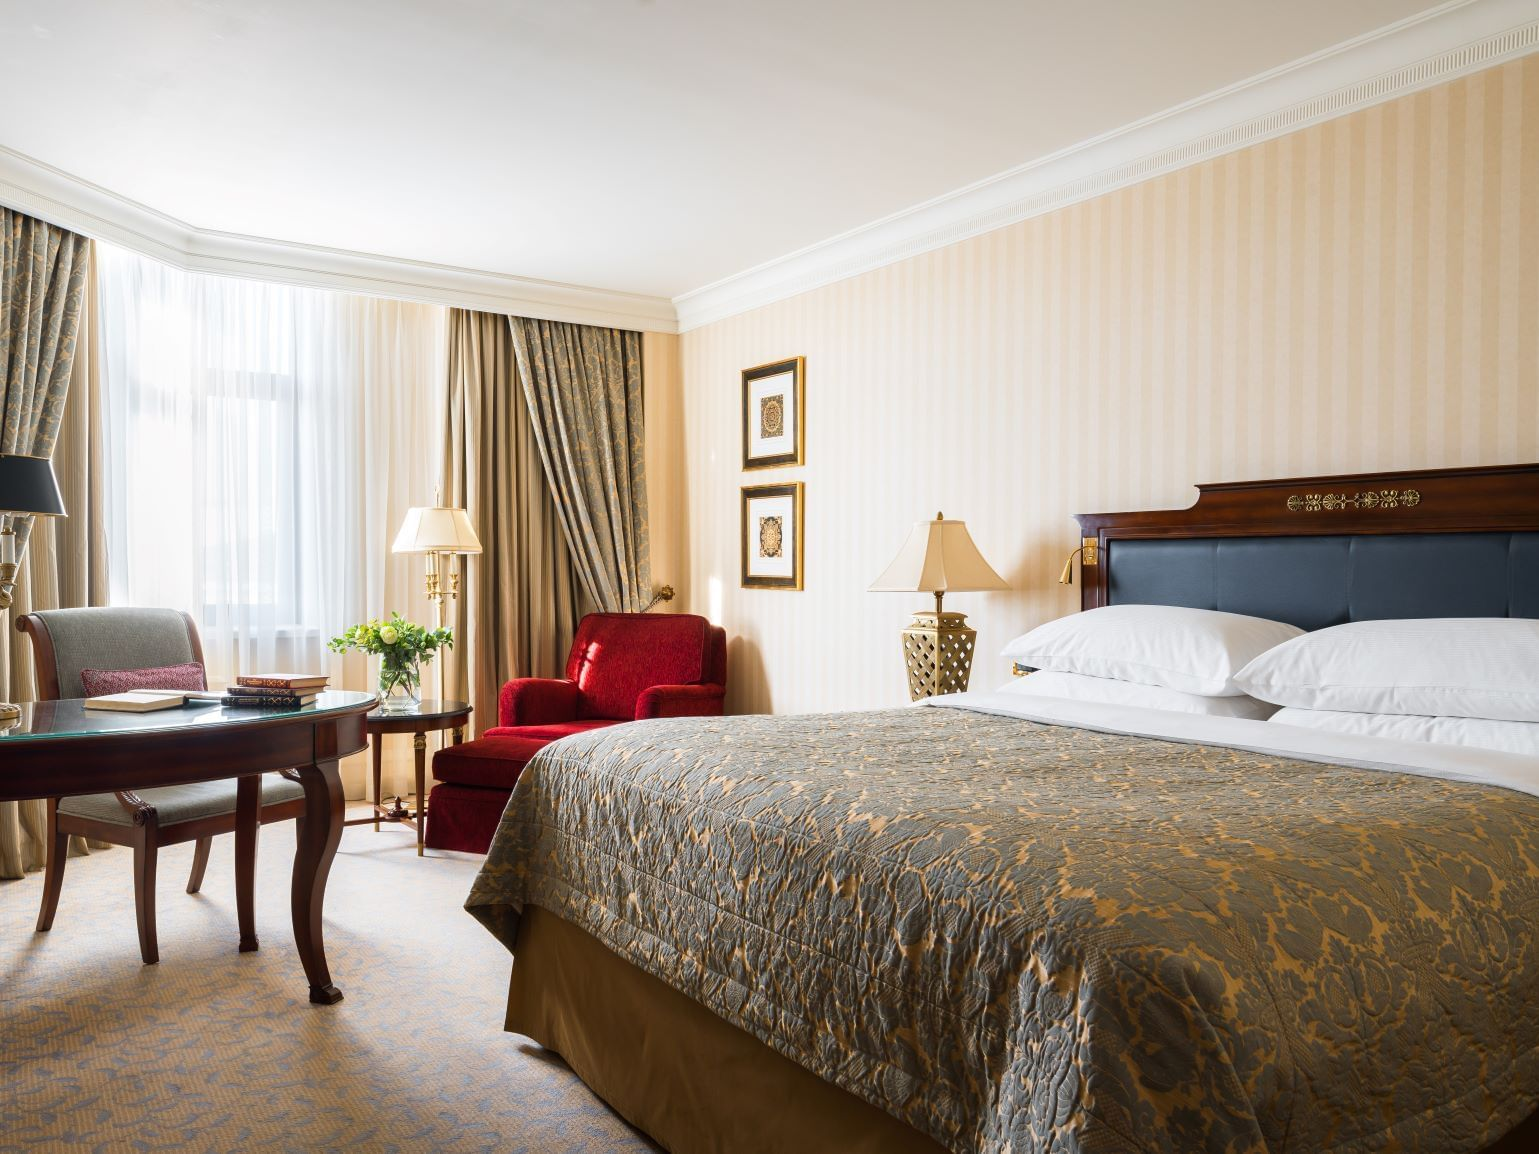 One bedroom in deluxe room - at Intercontinental Kyiv hotel